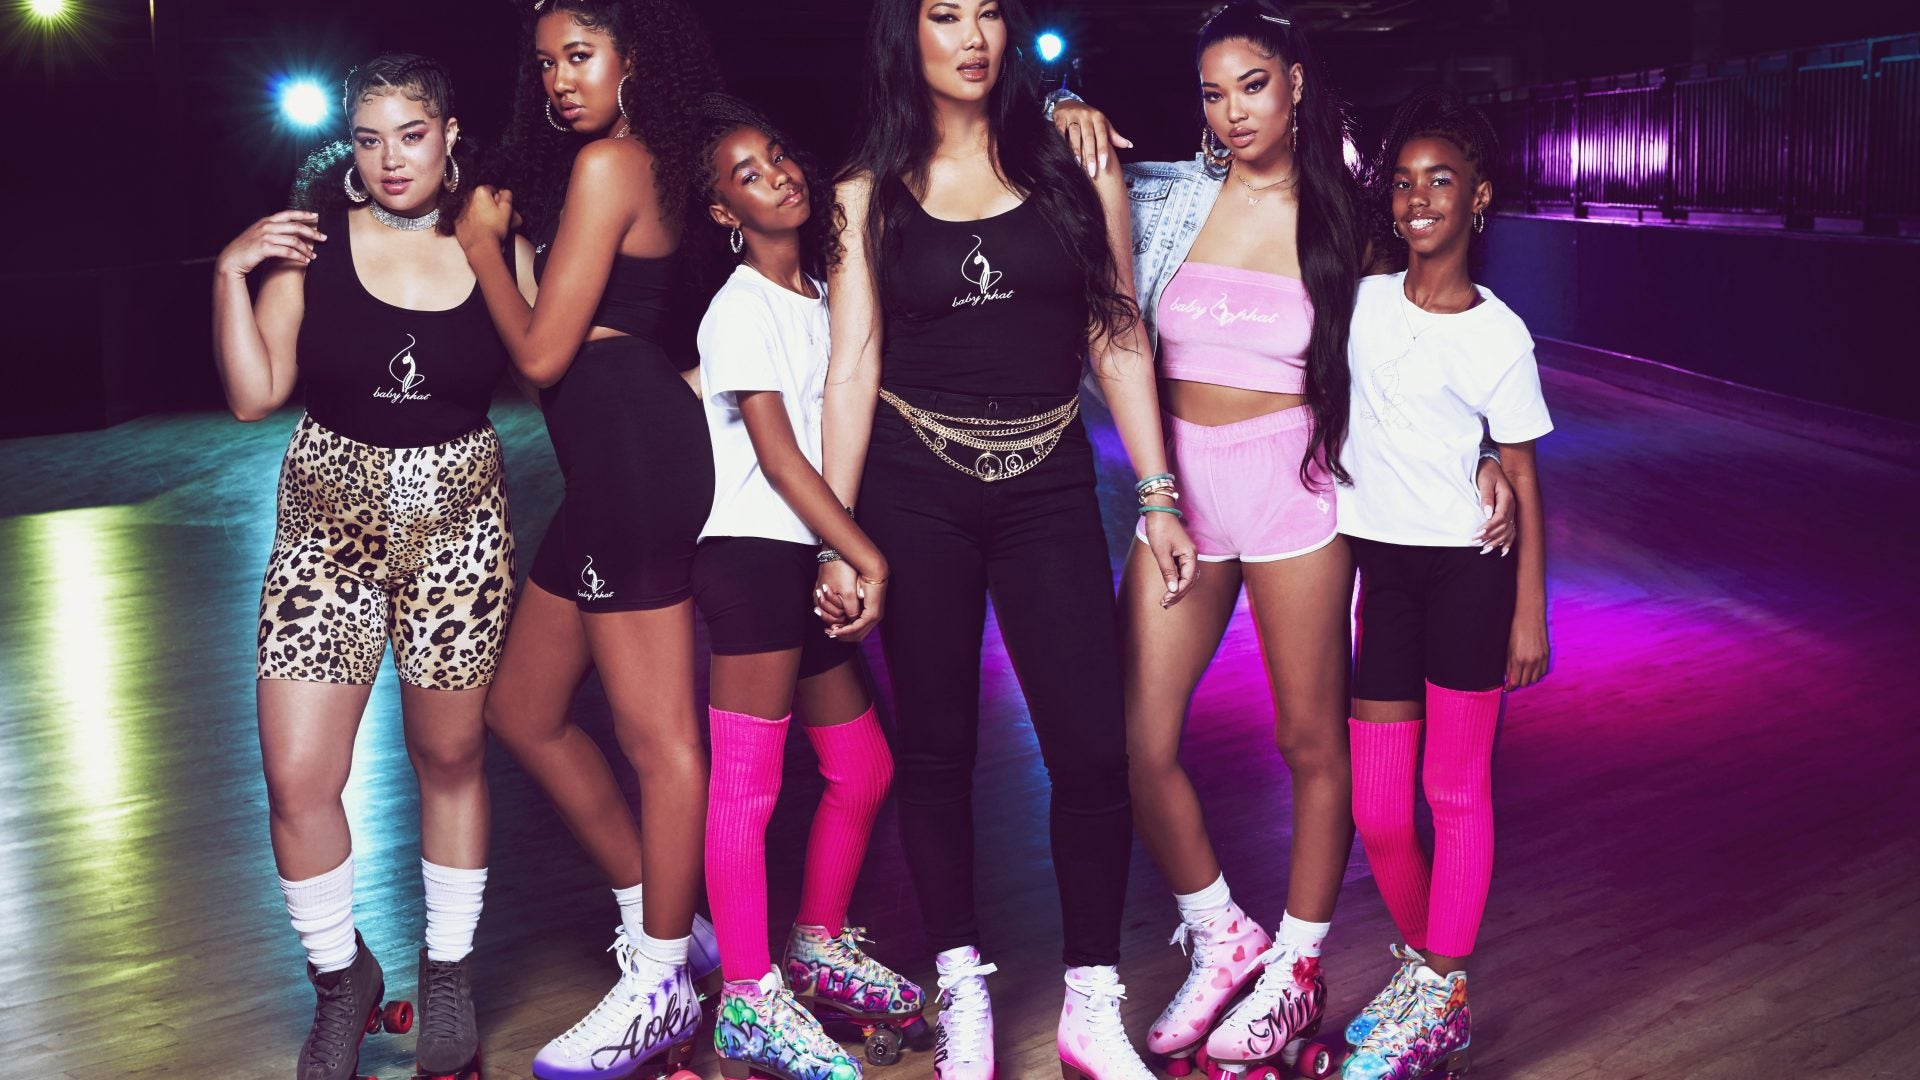 The New Baby Phat Drop Is Early 2000's Nostalgia With A Modern-Day Twist